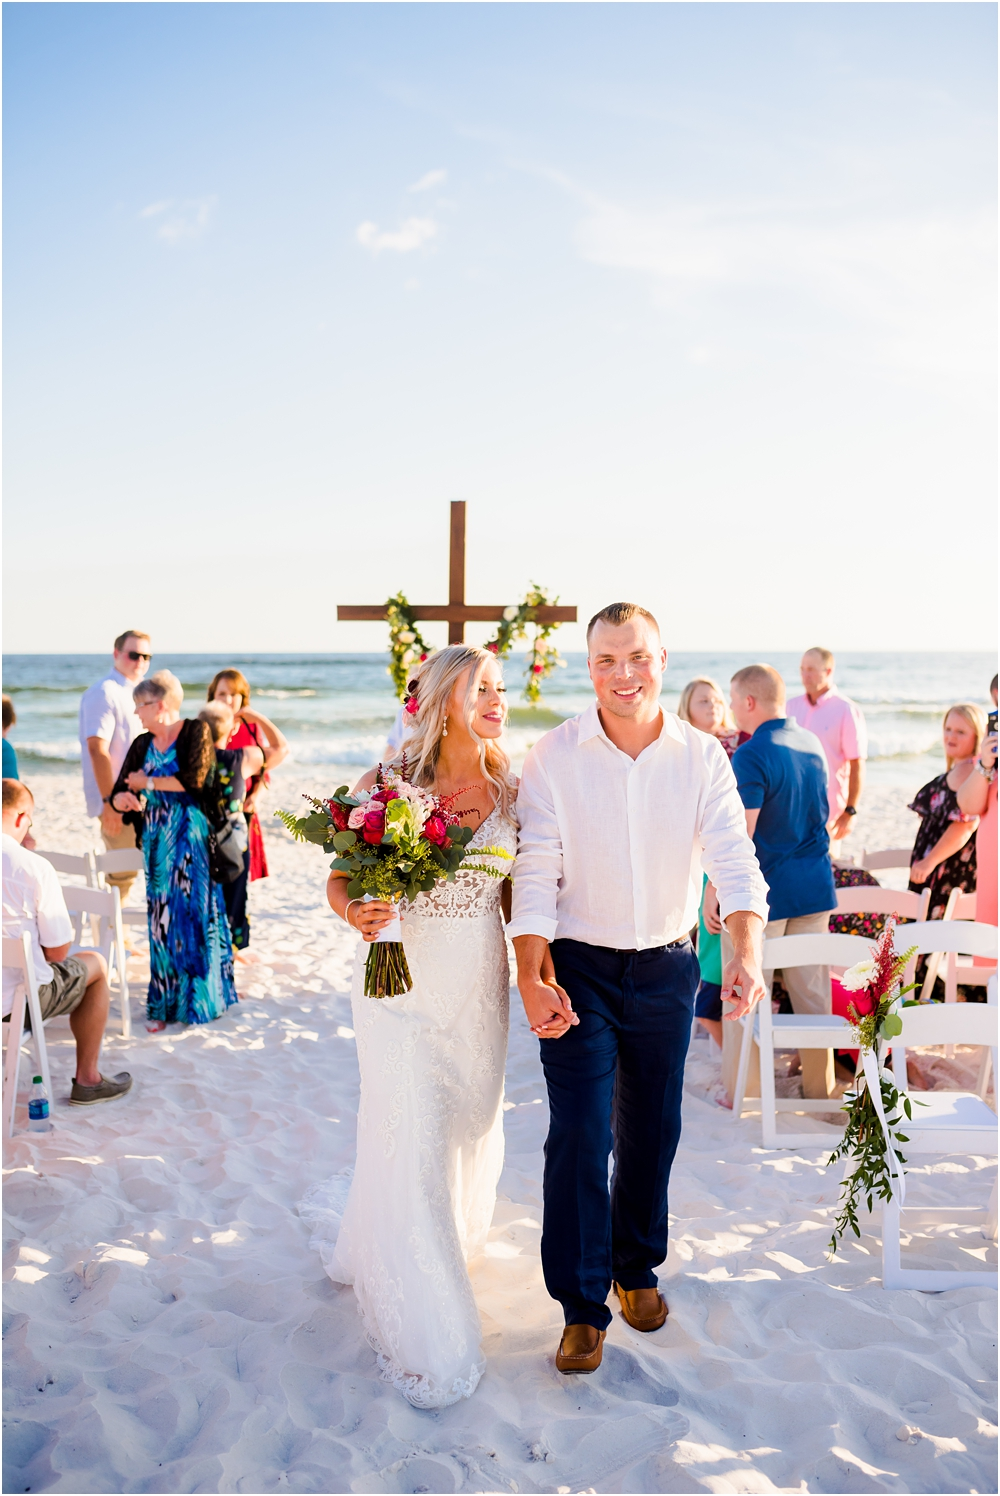 mcglothlin-wedding-kiersten-stevenson-photography-30a-panama-city-beach-dothan-tallahassee-(92-of-145).jpg